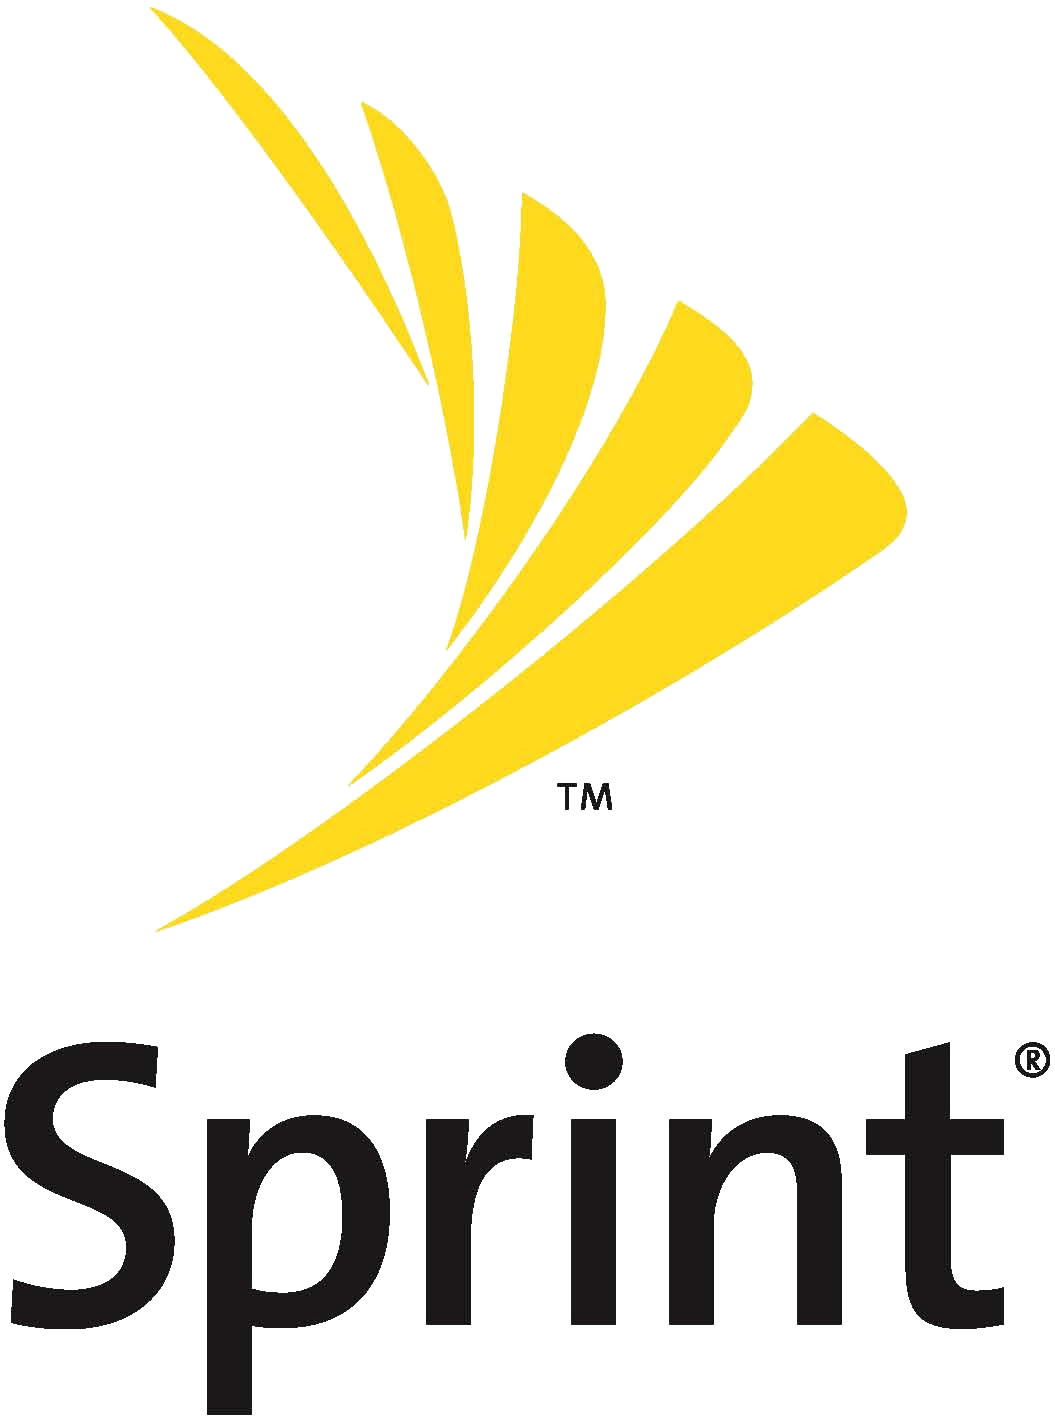 Sprint Rolls Out 4G LTE in Nine New Markets